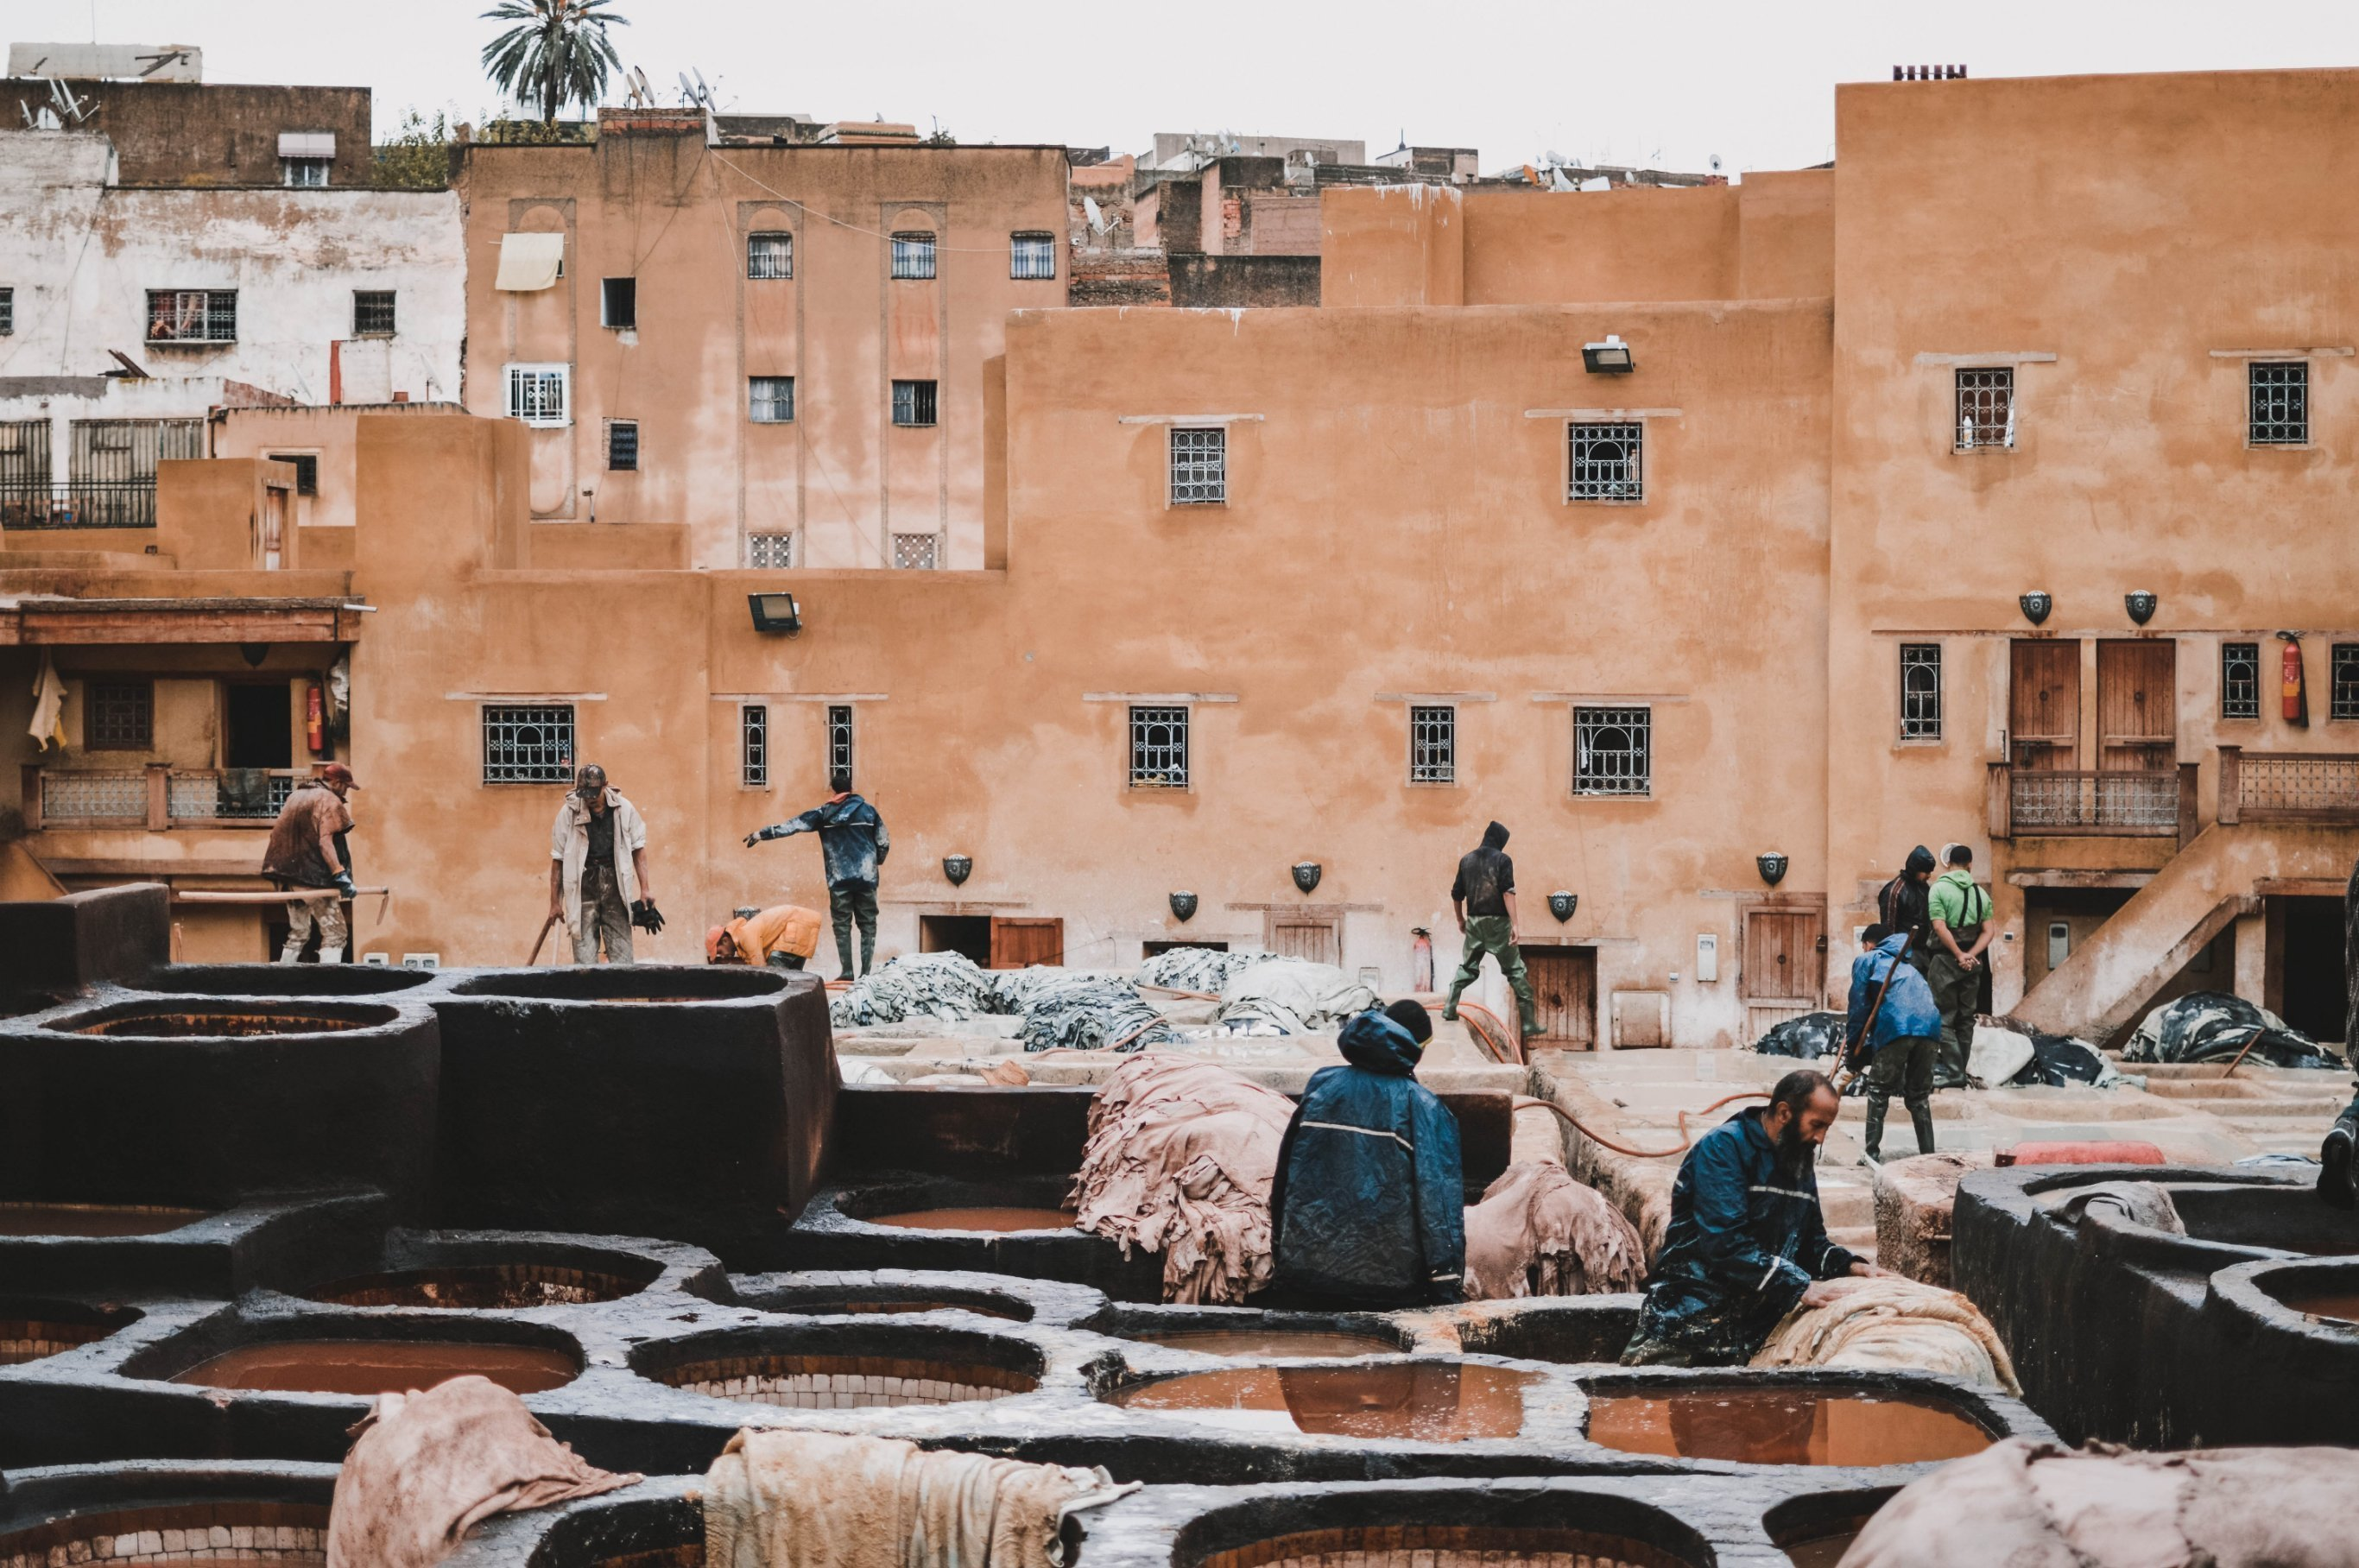 11-Day Morocco Discovery - Morocco Itinerary